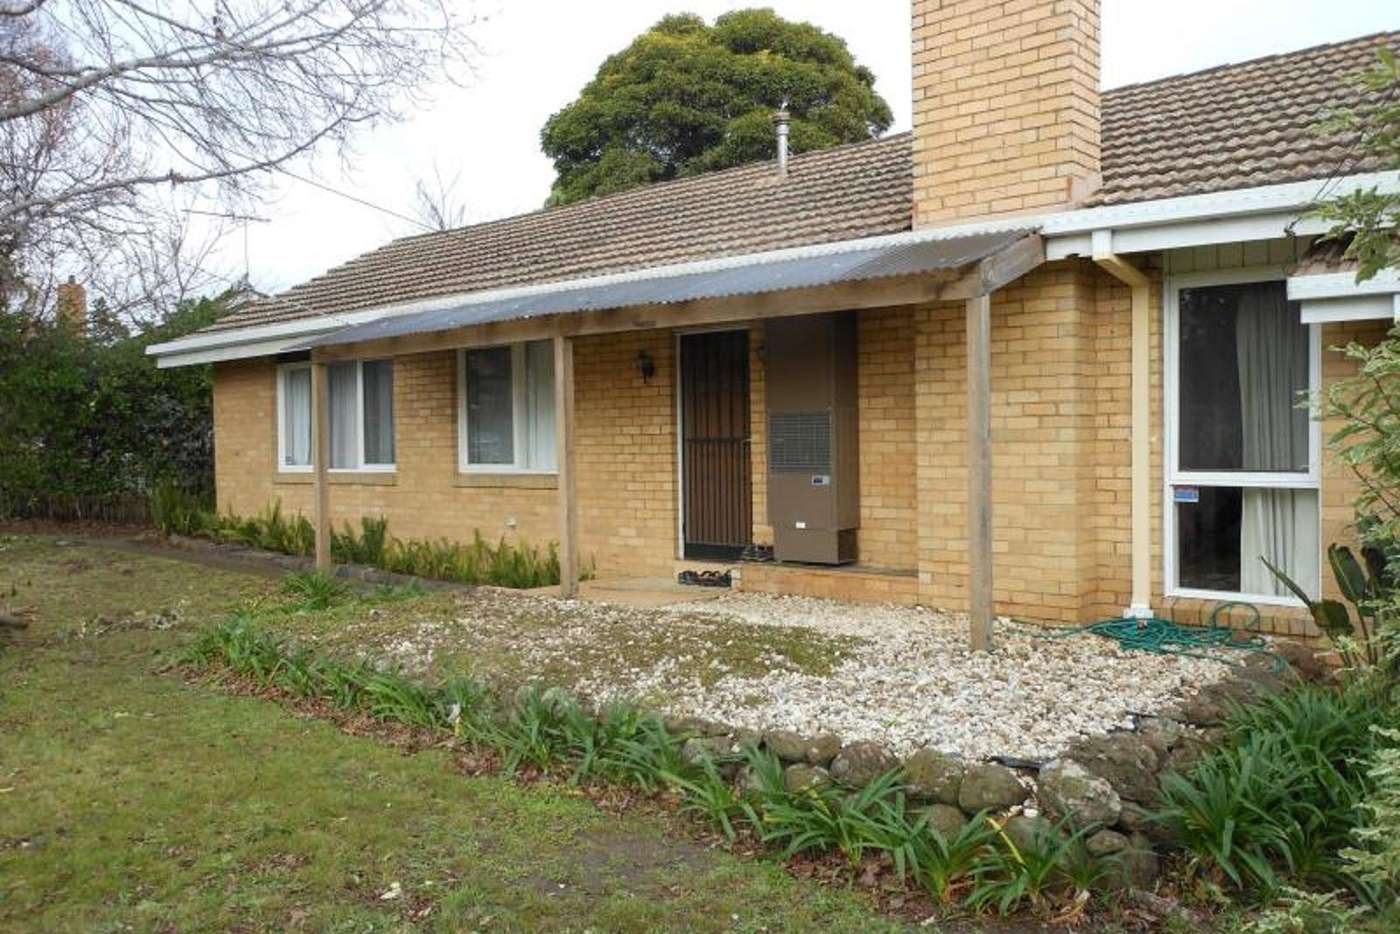 Seventh view of Homely house listing, 28 Wilson Road, Glen Waverley VIC 3150